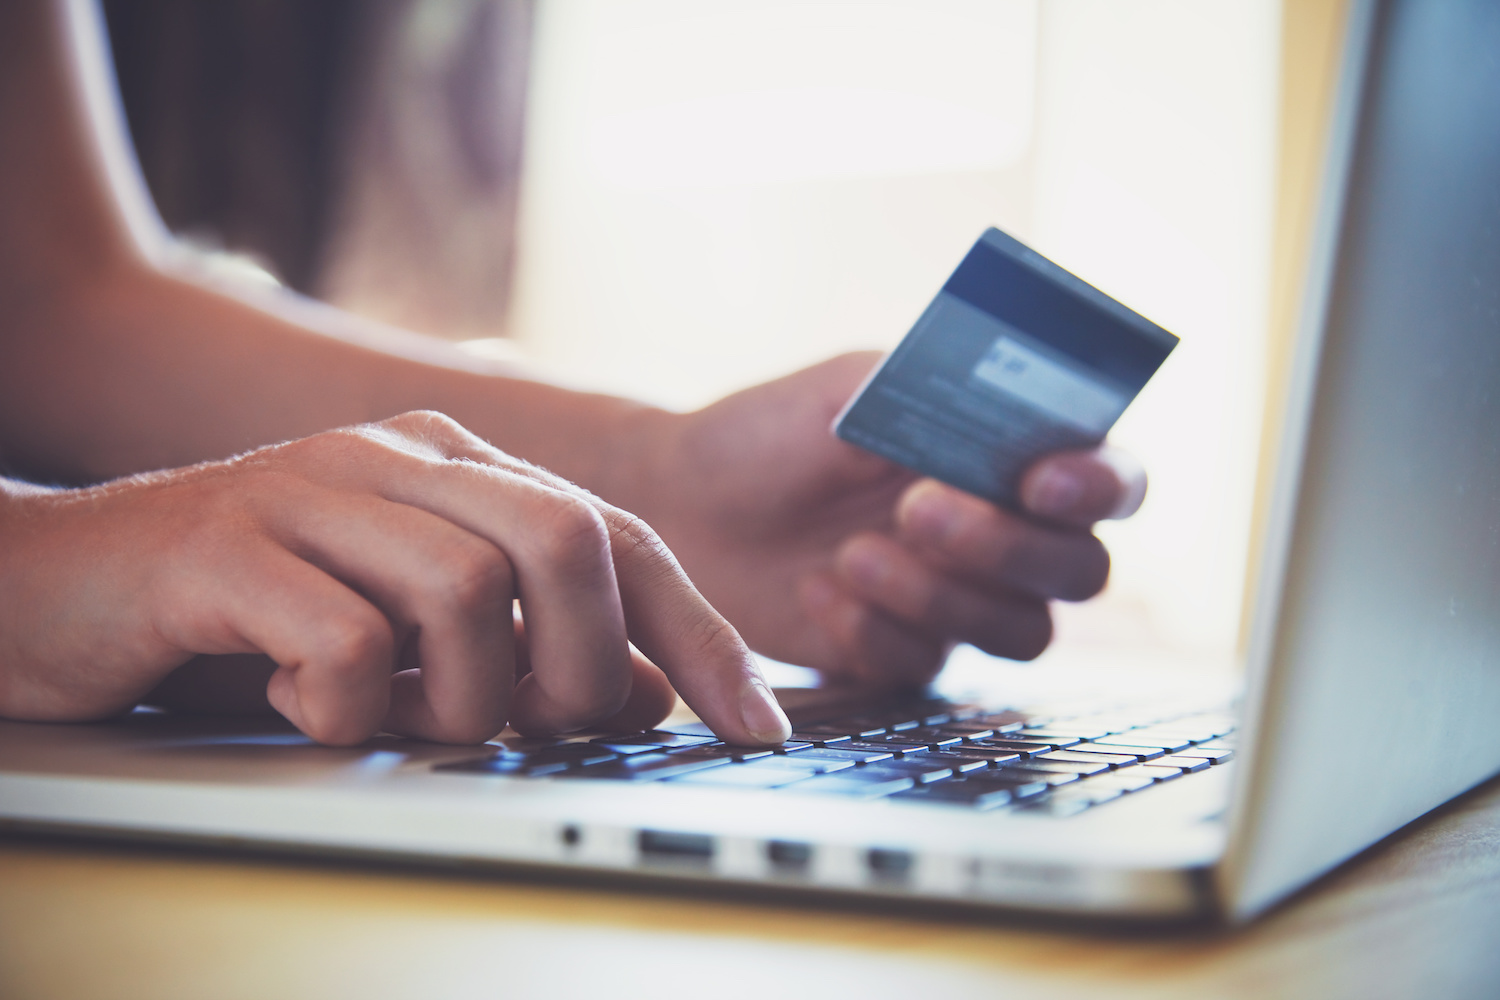 Typing credit card number